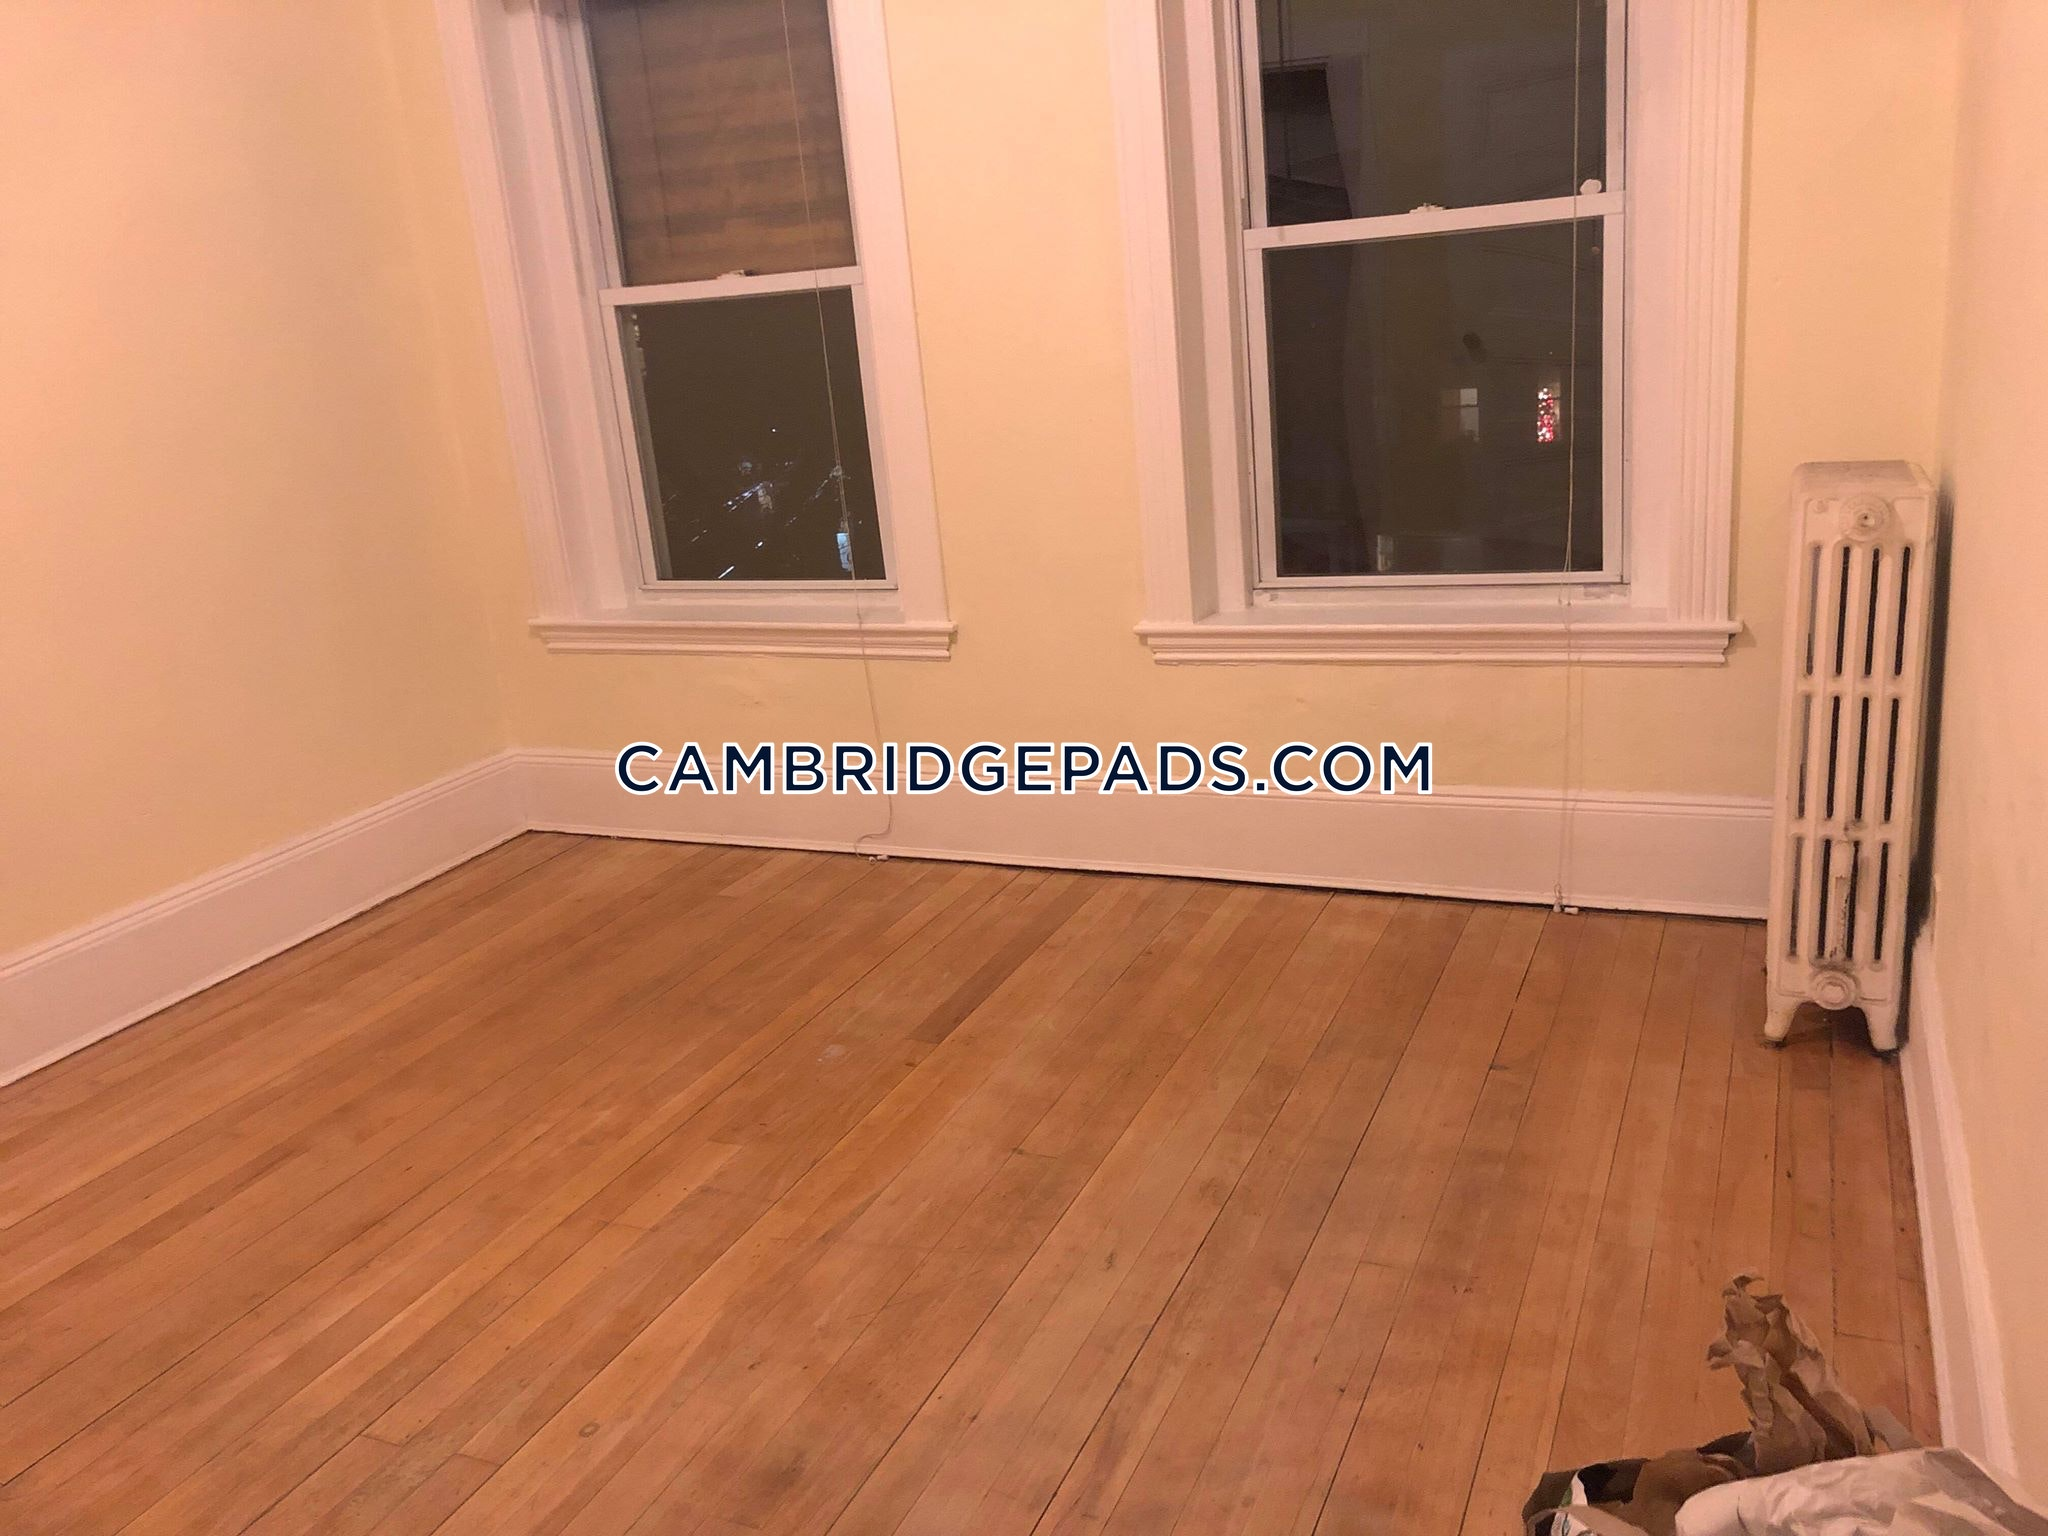 CAMBRIDGE - DAVIS SQUARE - $850